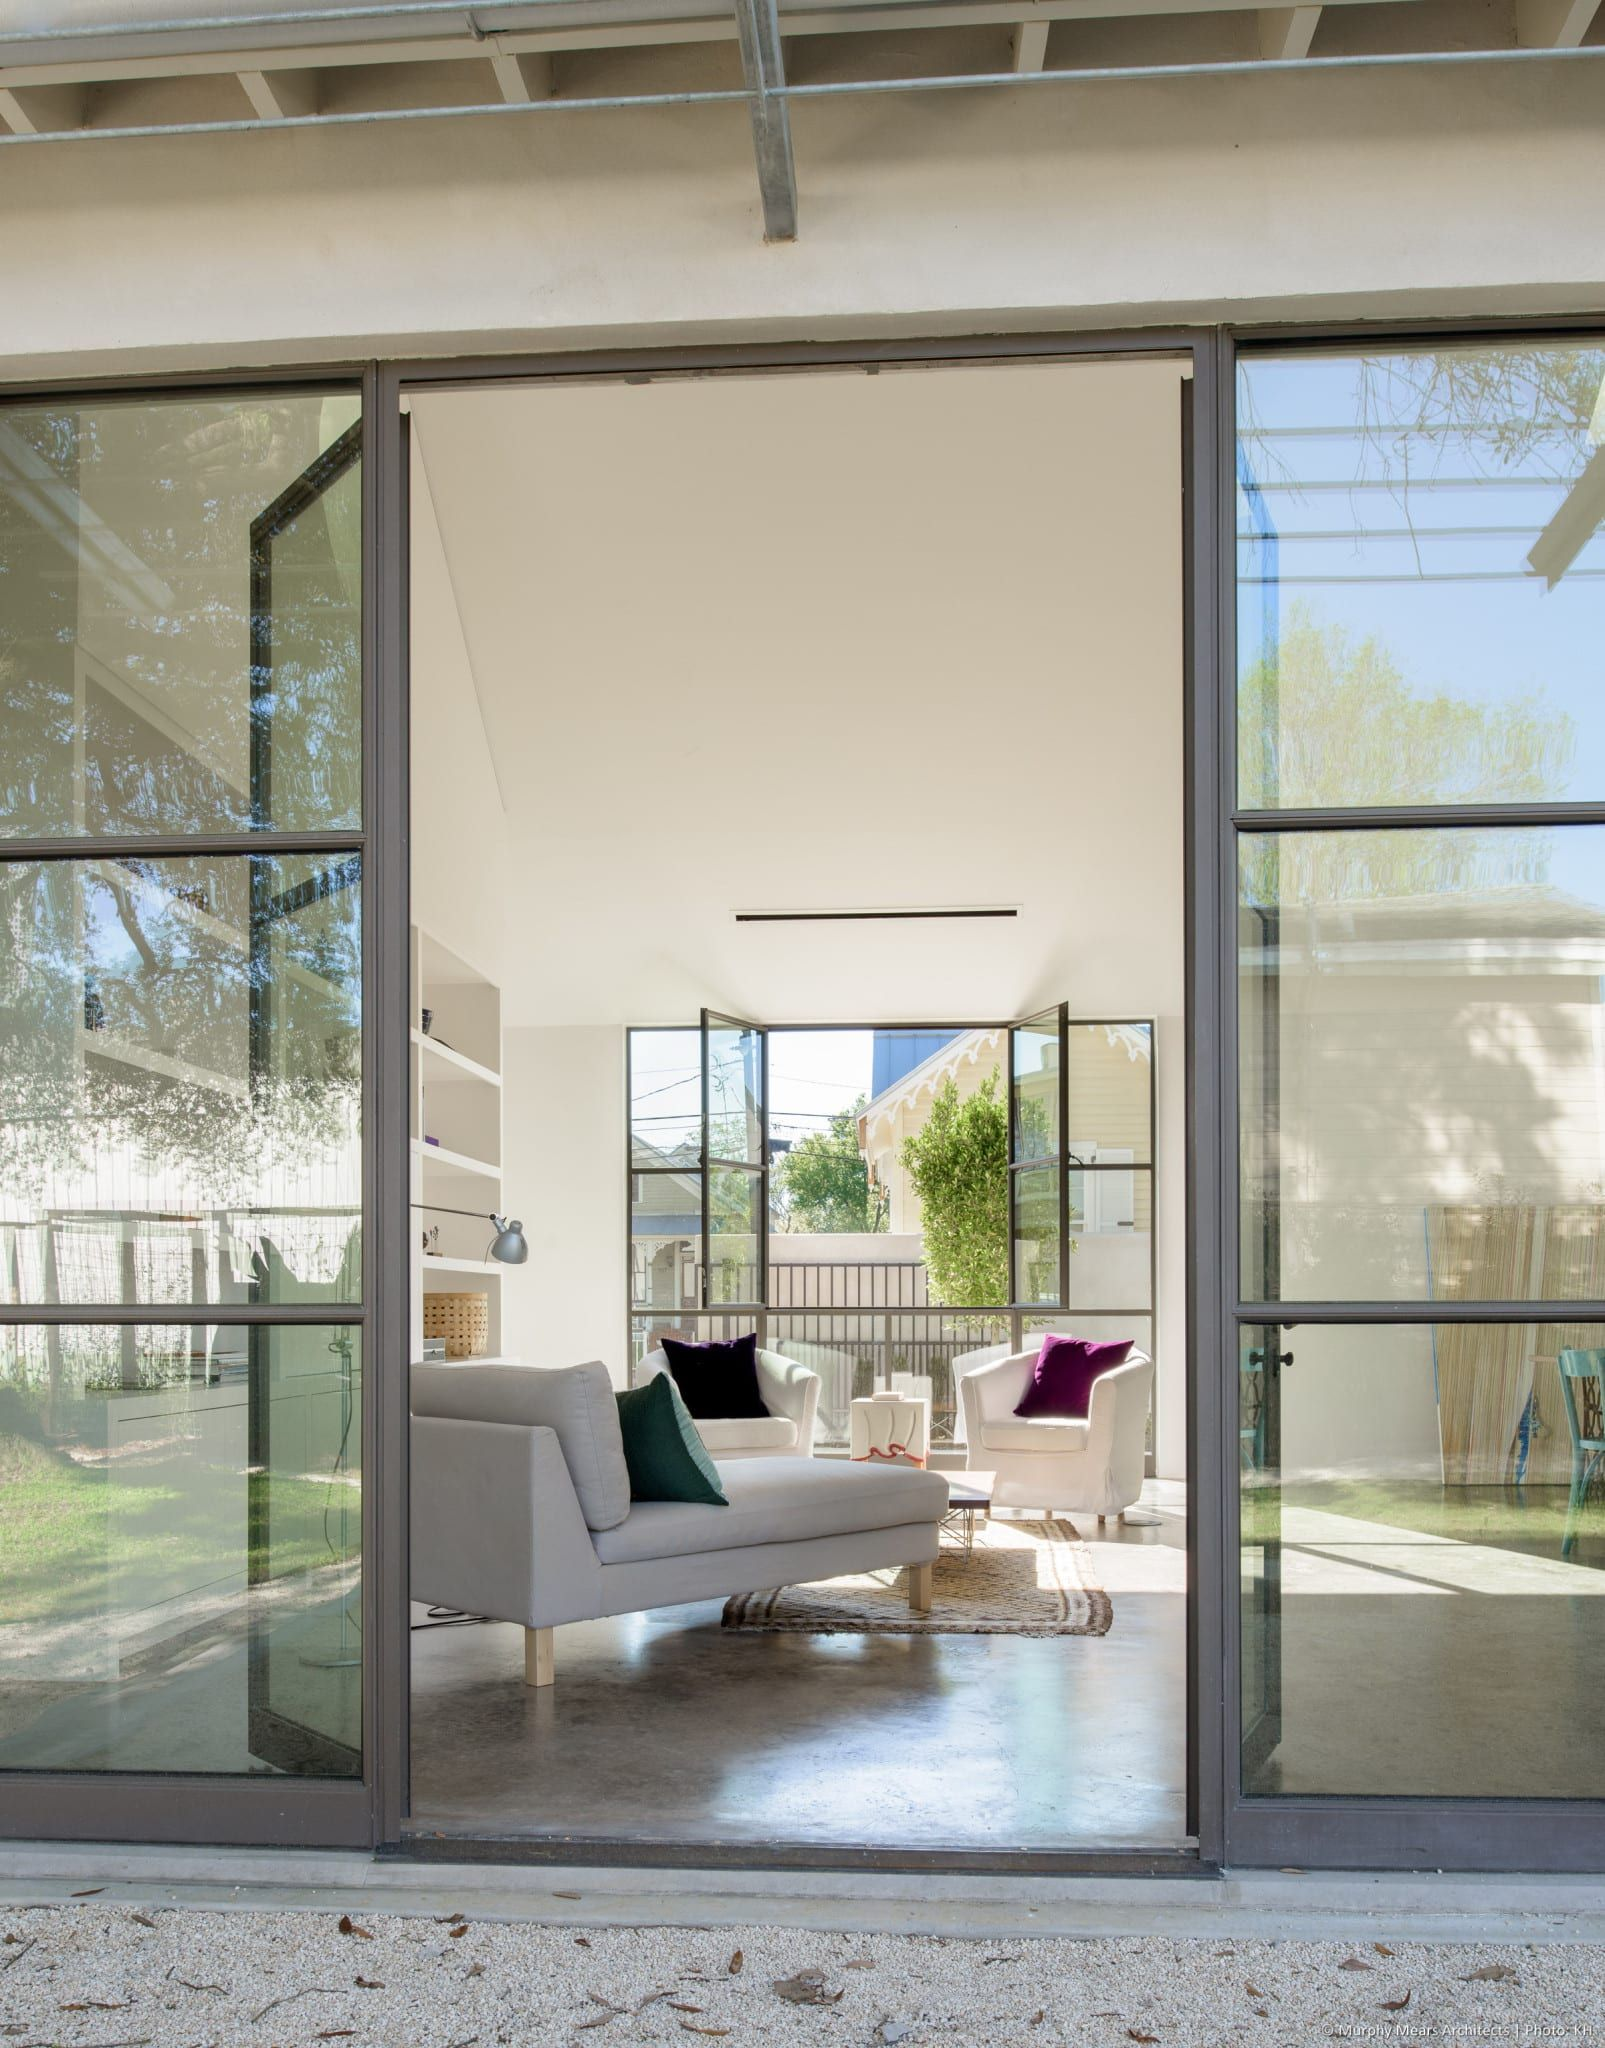 Doors and windows open to the front and back courtyards on each side ...